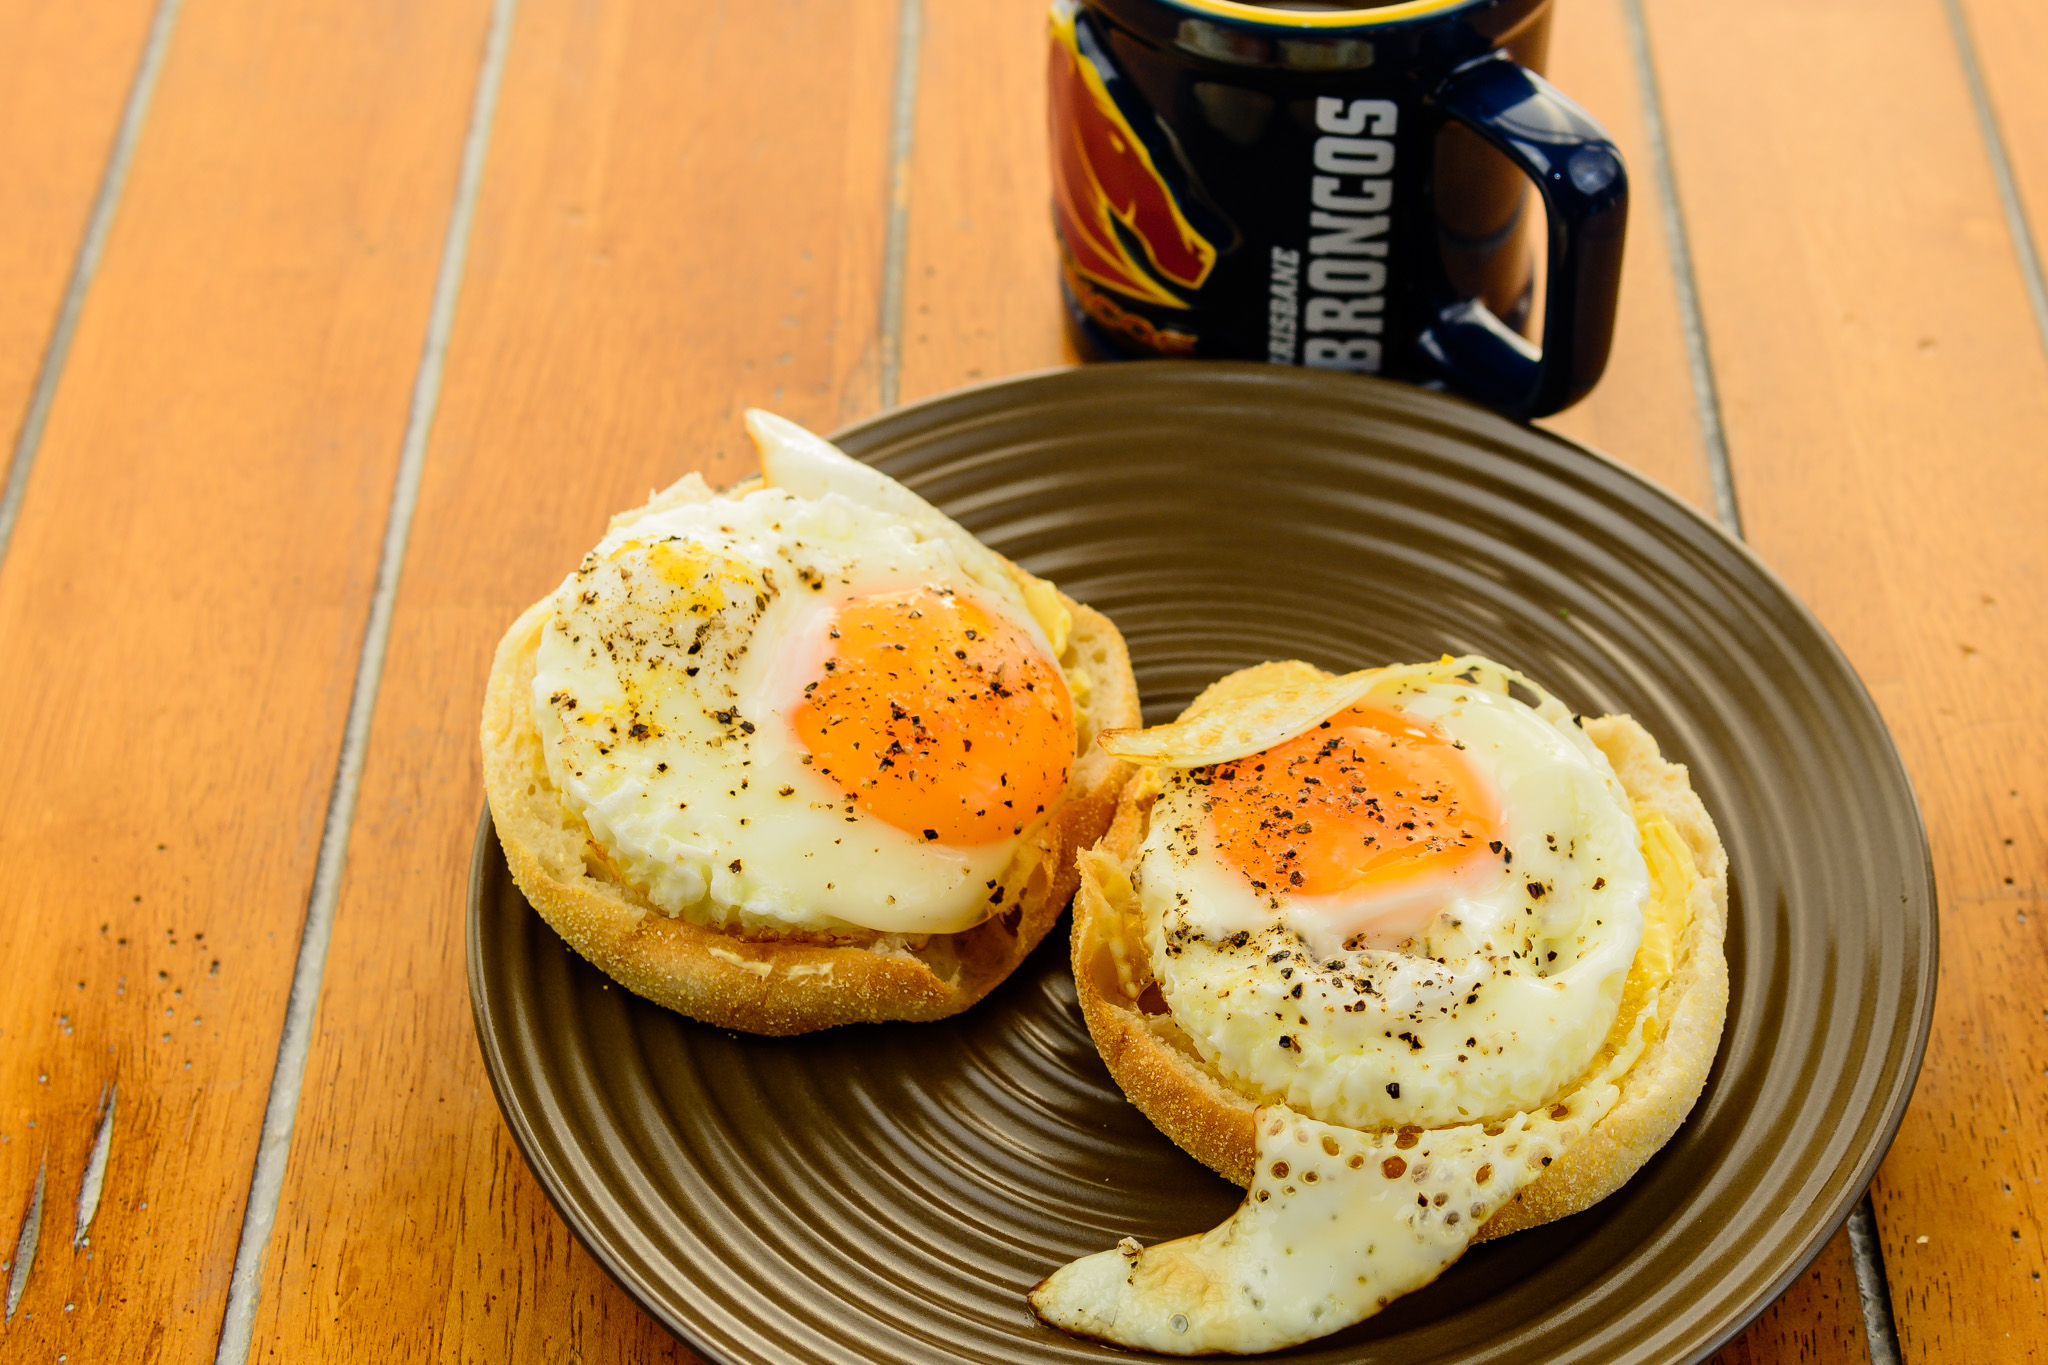 Low residue Sunday breakfast. Fried eggs on English muffin.